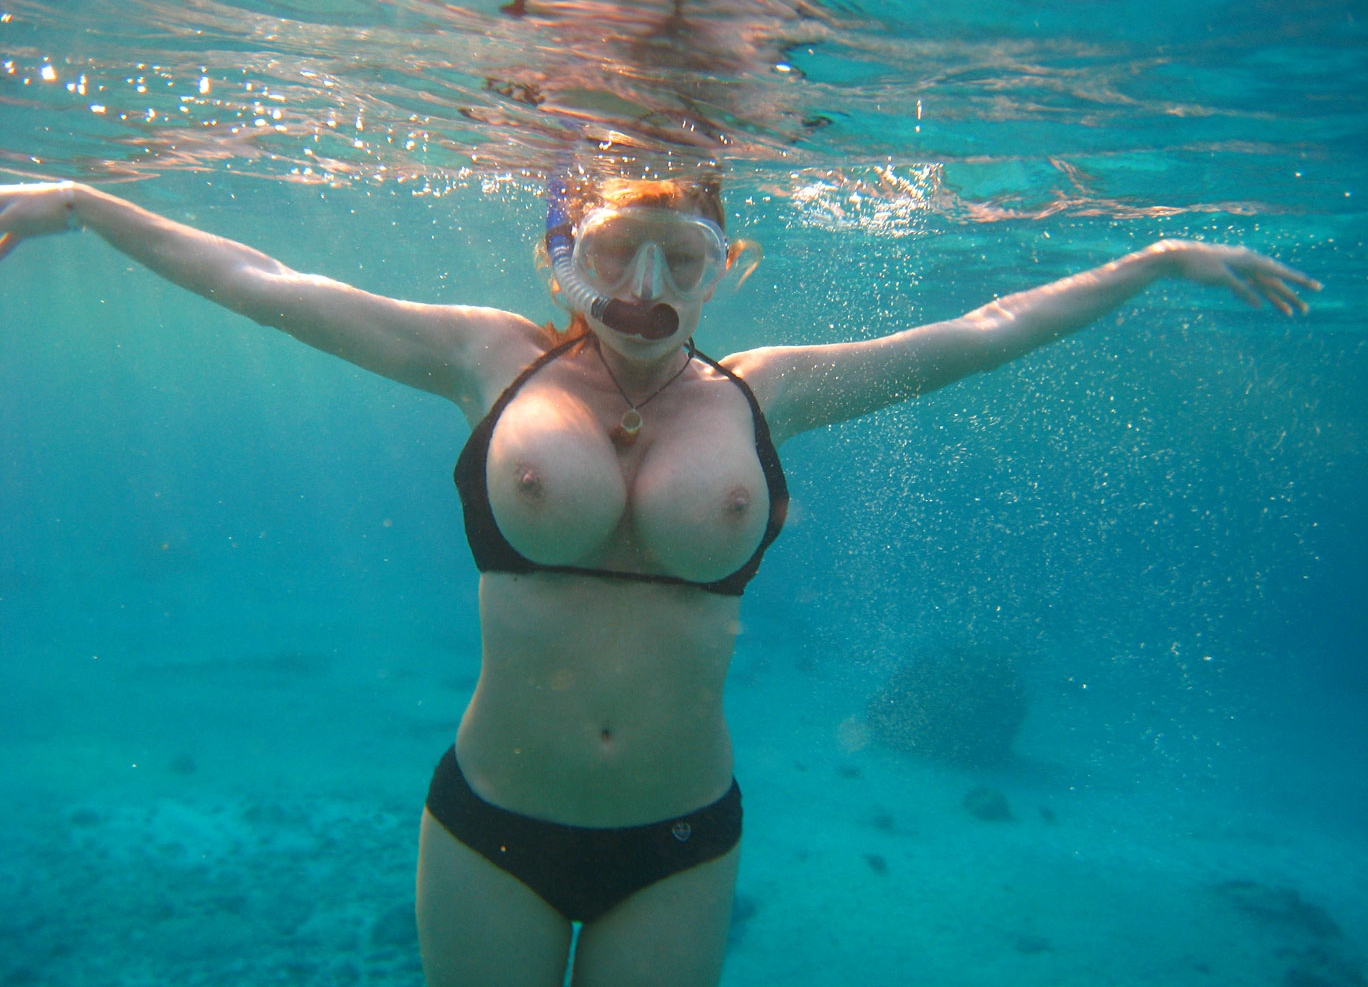 Think, Daughter swimming nude